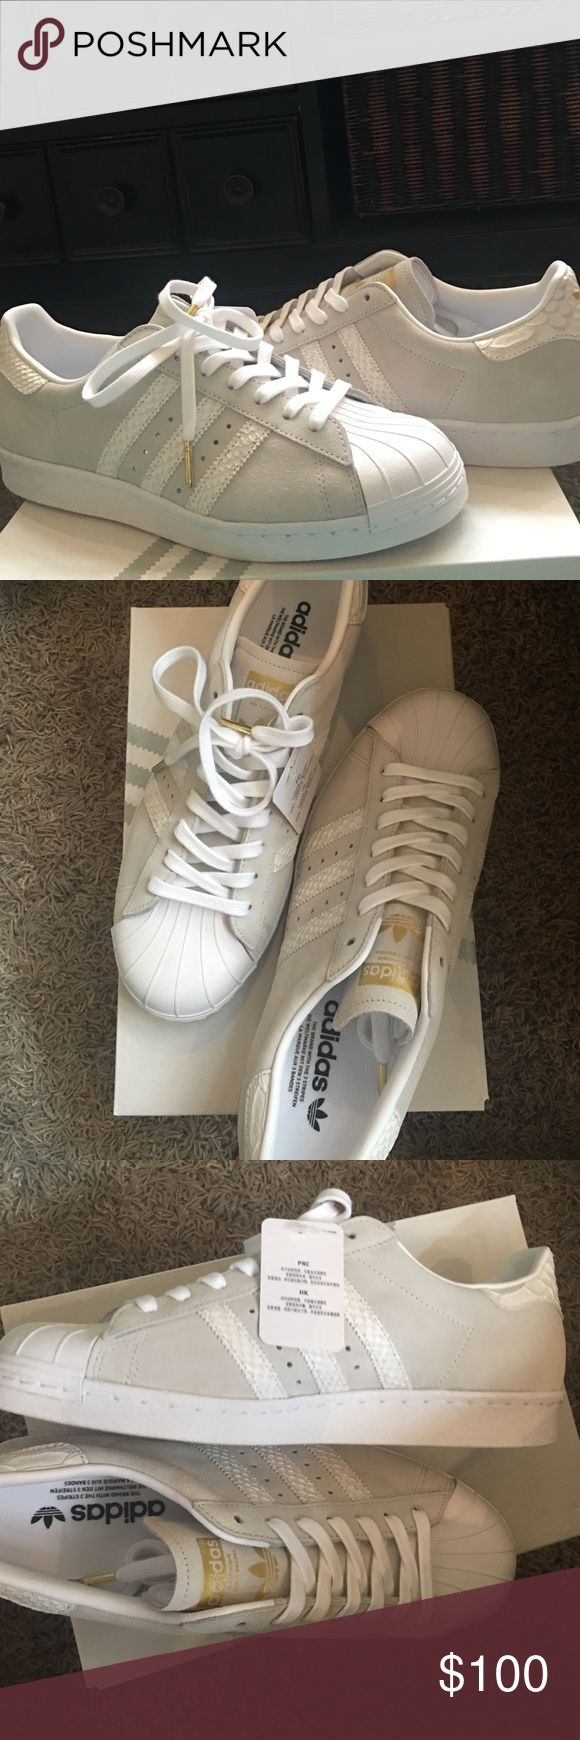 Custom adidas superstar shoes(never worn) Adidas superstars never worn with tags custom designed with grey suede, snake skin stripes and heel pad, white laces with gold tips, gold adidas logo on tongue and heel...extra white laces with adidas bag Adidas Shoes Sneakers